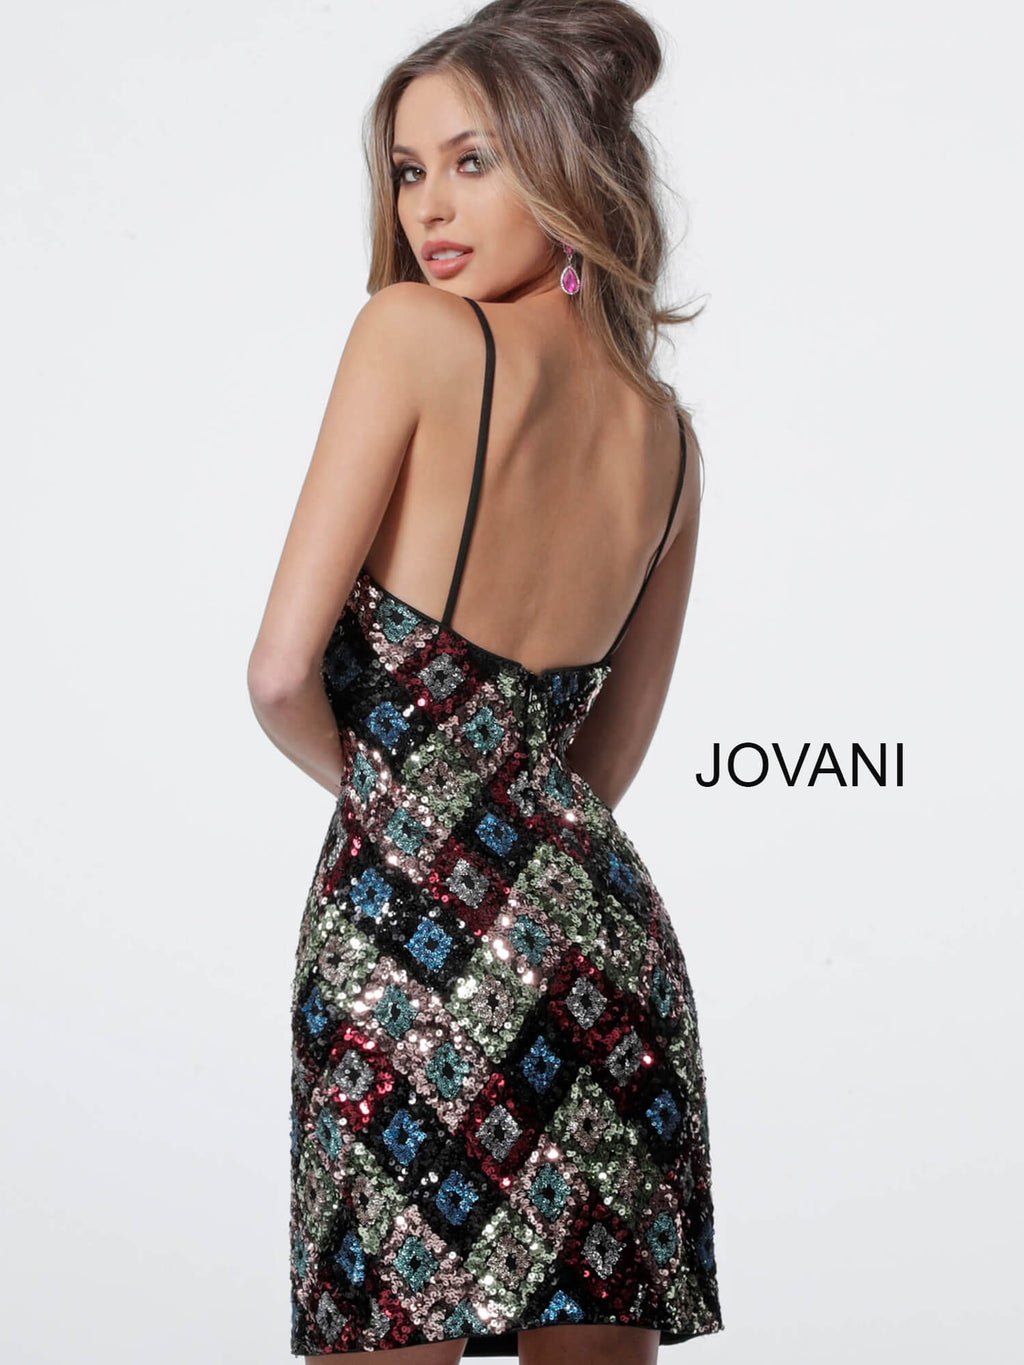 JOVANI 2108 Sequin Cocktail Dress - CYC Boutique